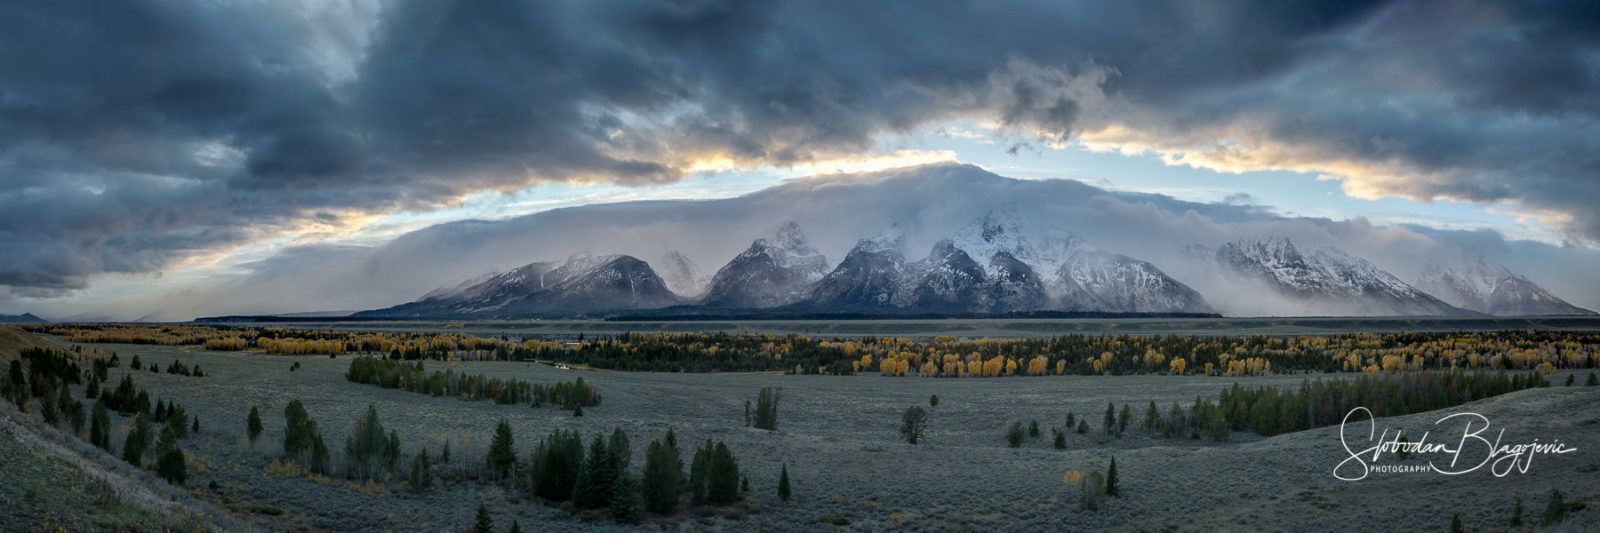 Grand Teton – Clearing Storm at Sunset